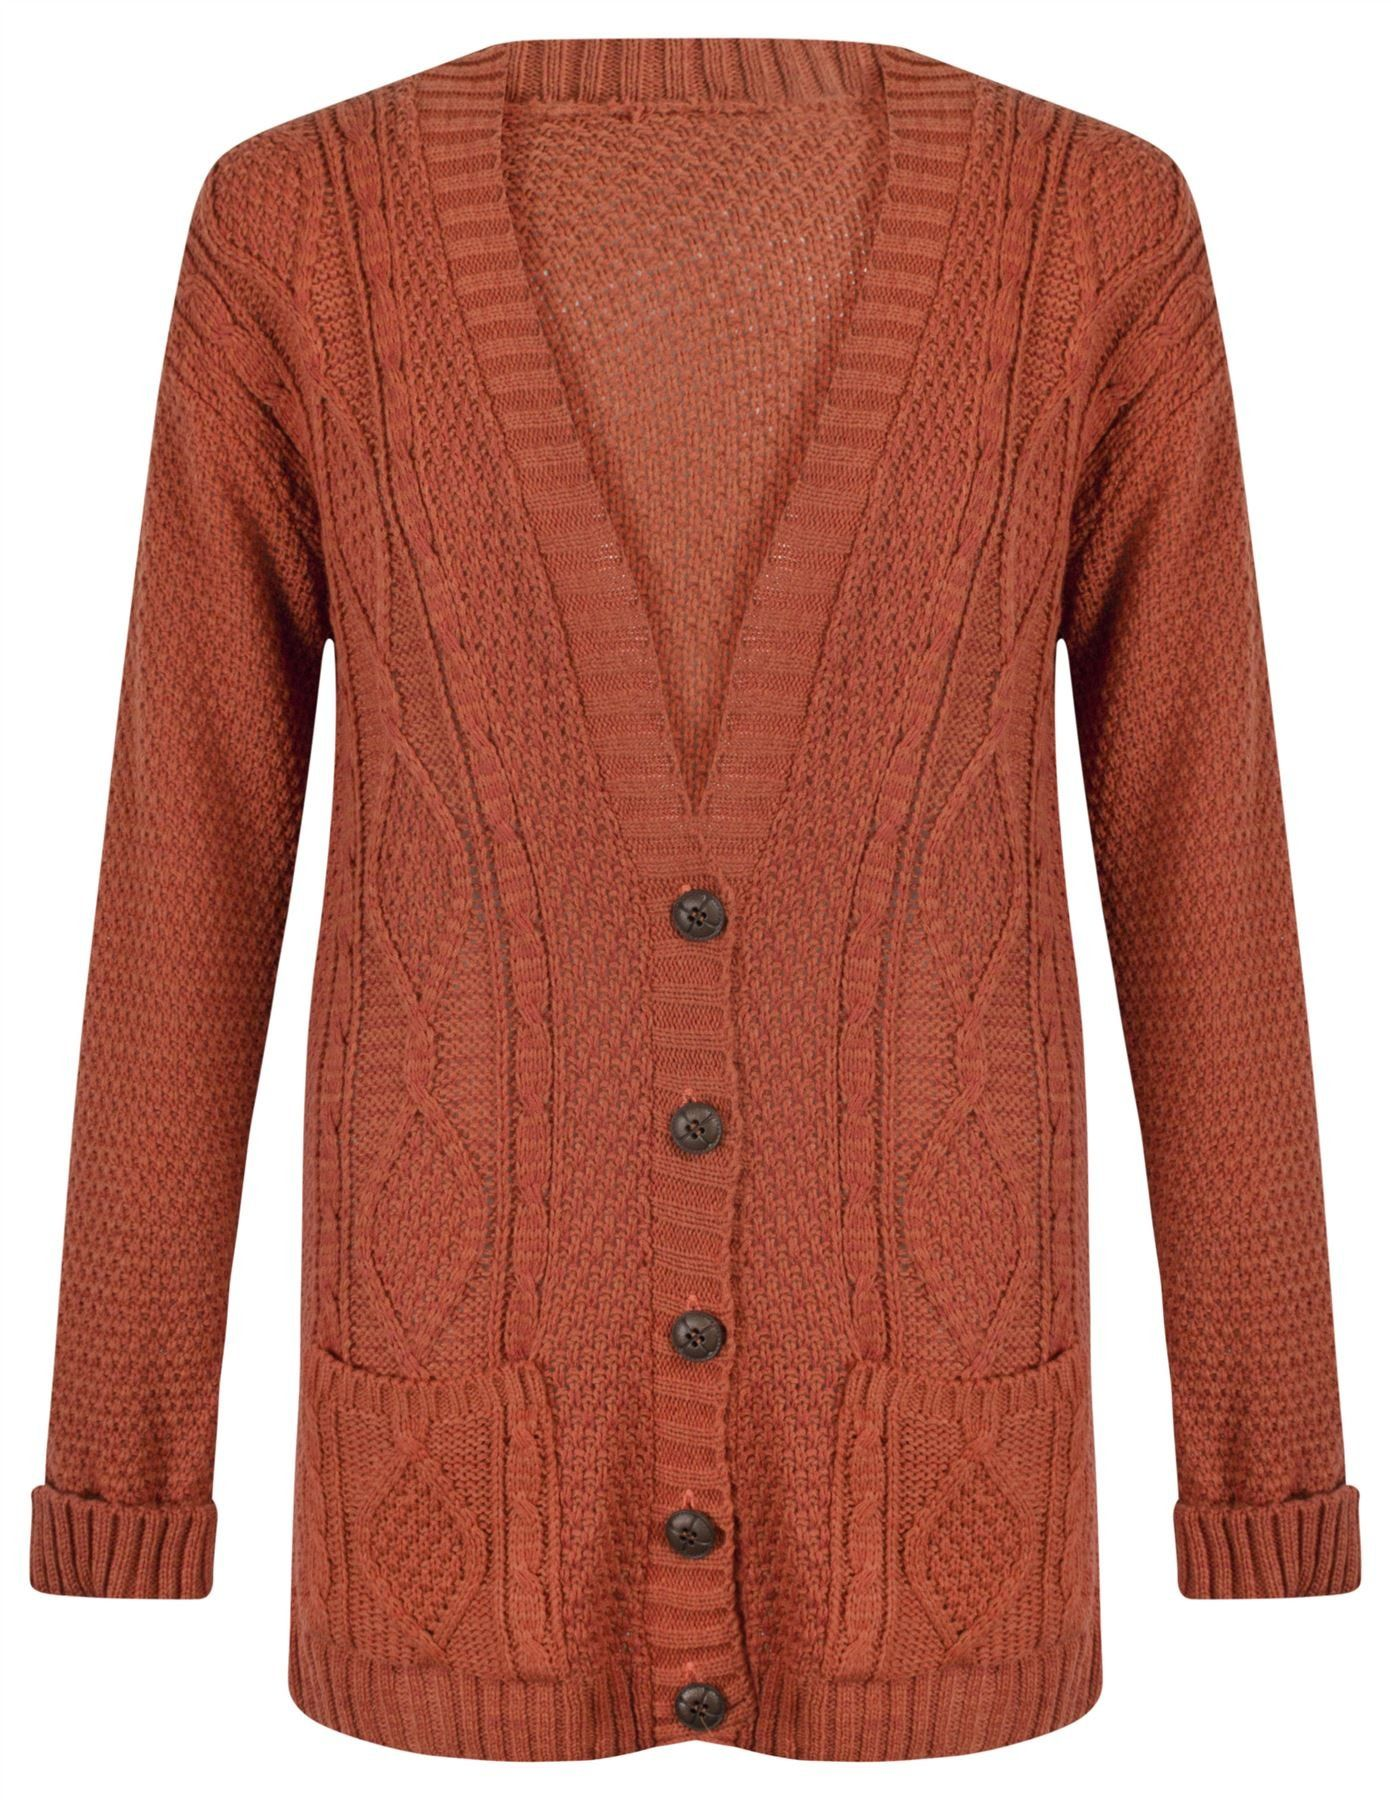 542376c354 Womens Ladies Chunky Cable Knitted Long Sleeve Button Grandad Knitwear  Cardigan - BLACK - One Size(UK8-14) - (Mixed Fibres) at Amazon Women s  Clothing store ...